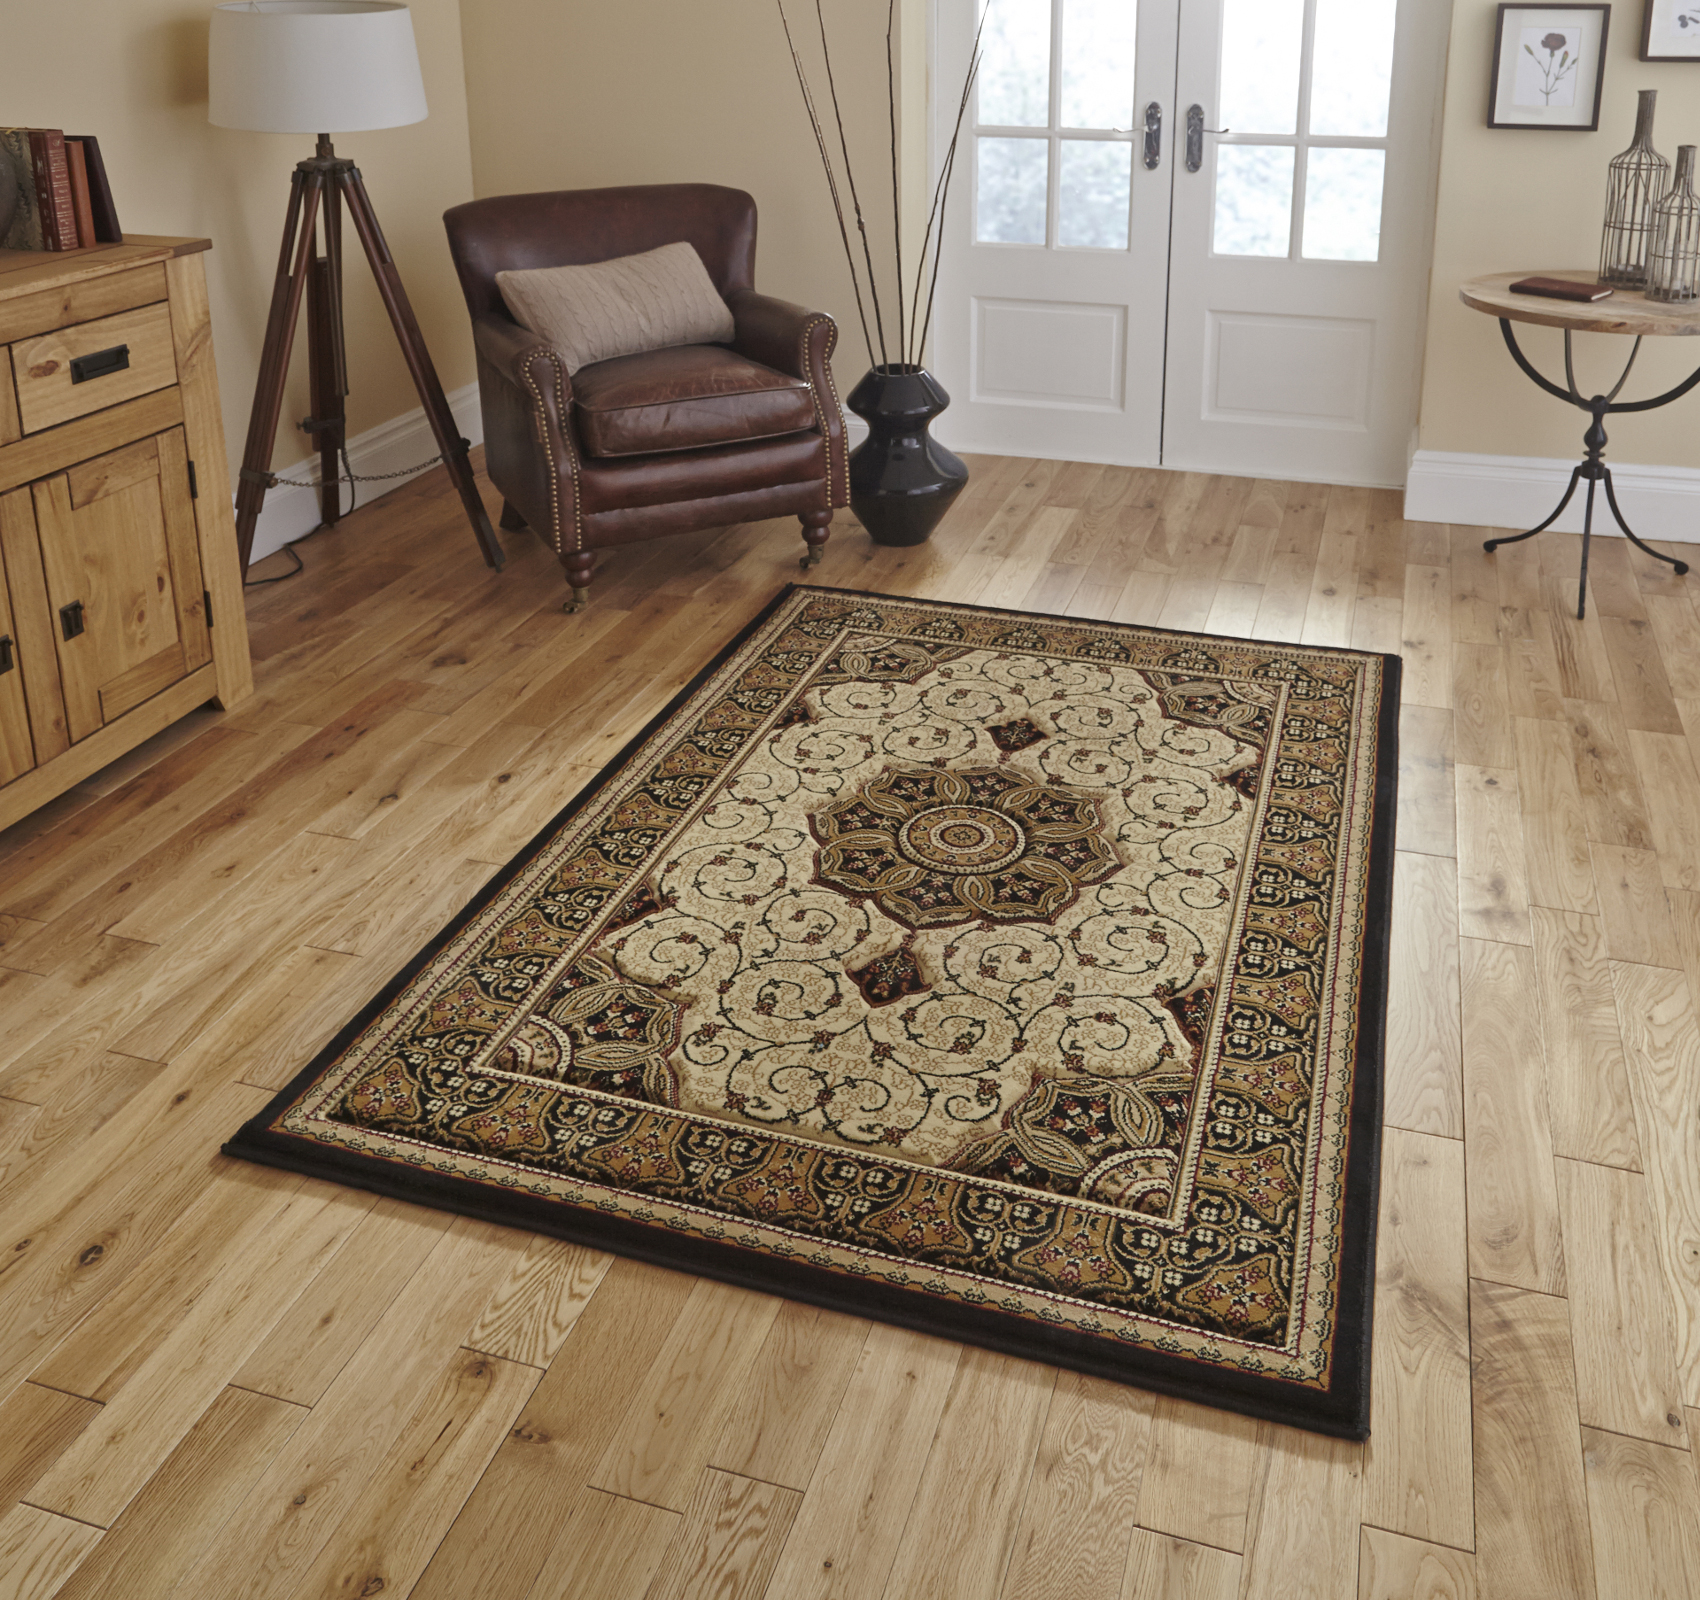 Traditional Heritage Soft Wool Look Pile Rug Floral